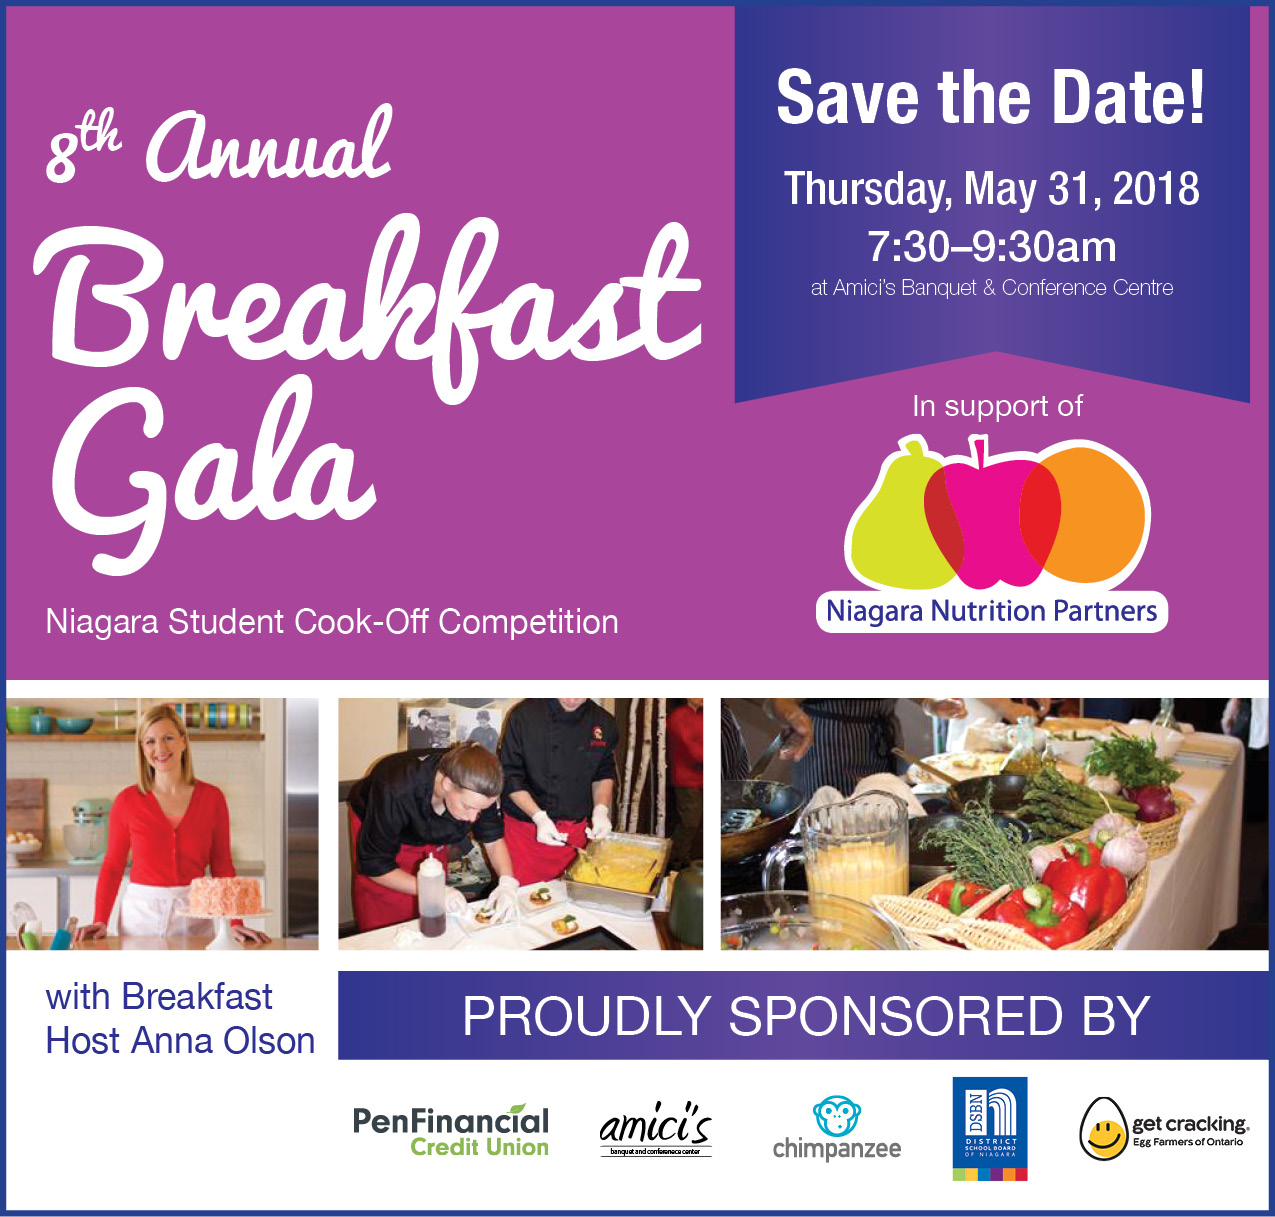 Save the Date for our 8th Annual Breakfast Gala & Student Cook-Off Competition - May 31st, 2018 at 7:30am